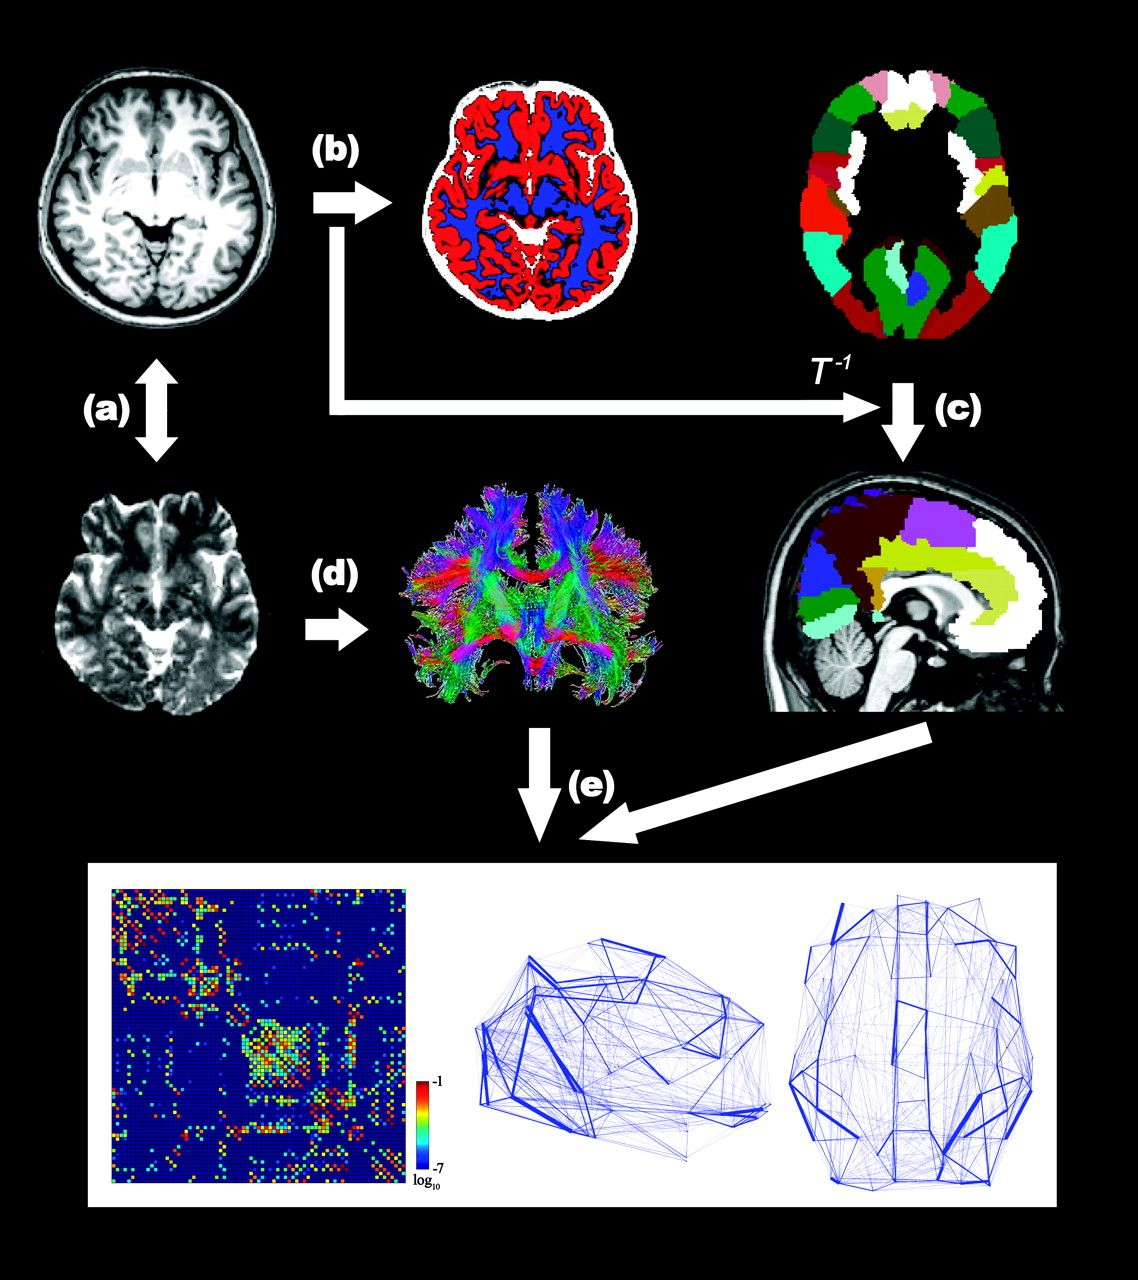 The construction of a cortical anatomical network by diffusion tensor imaging.